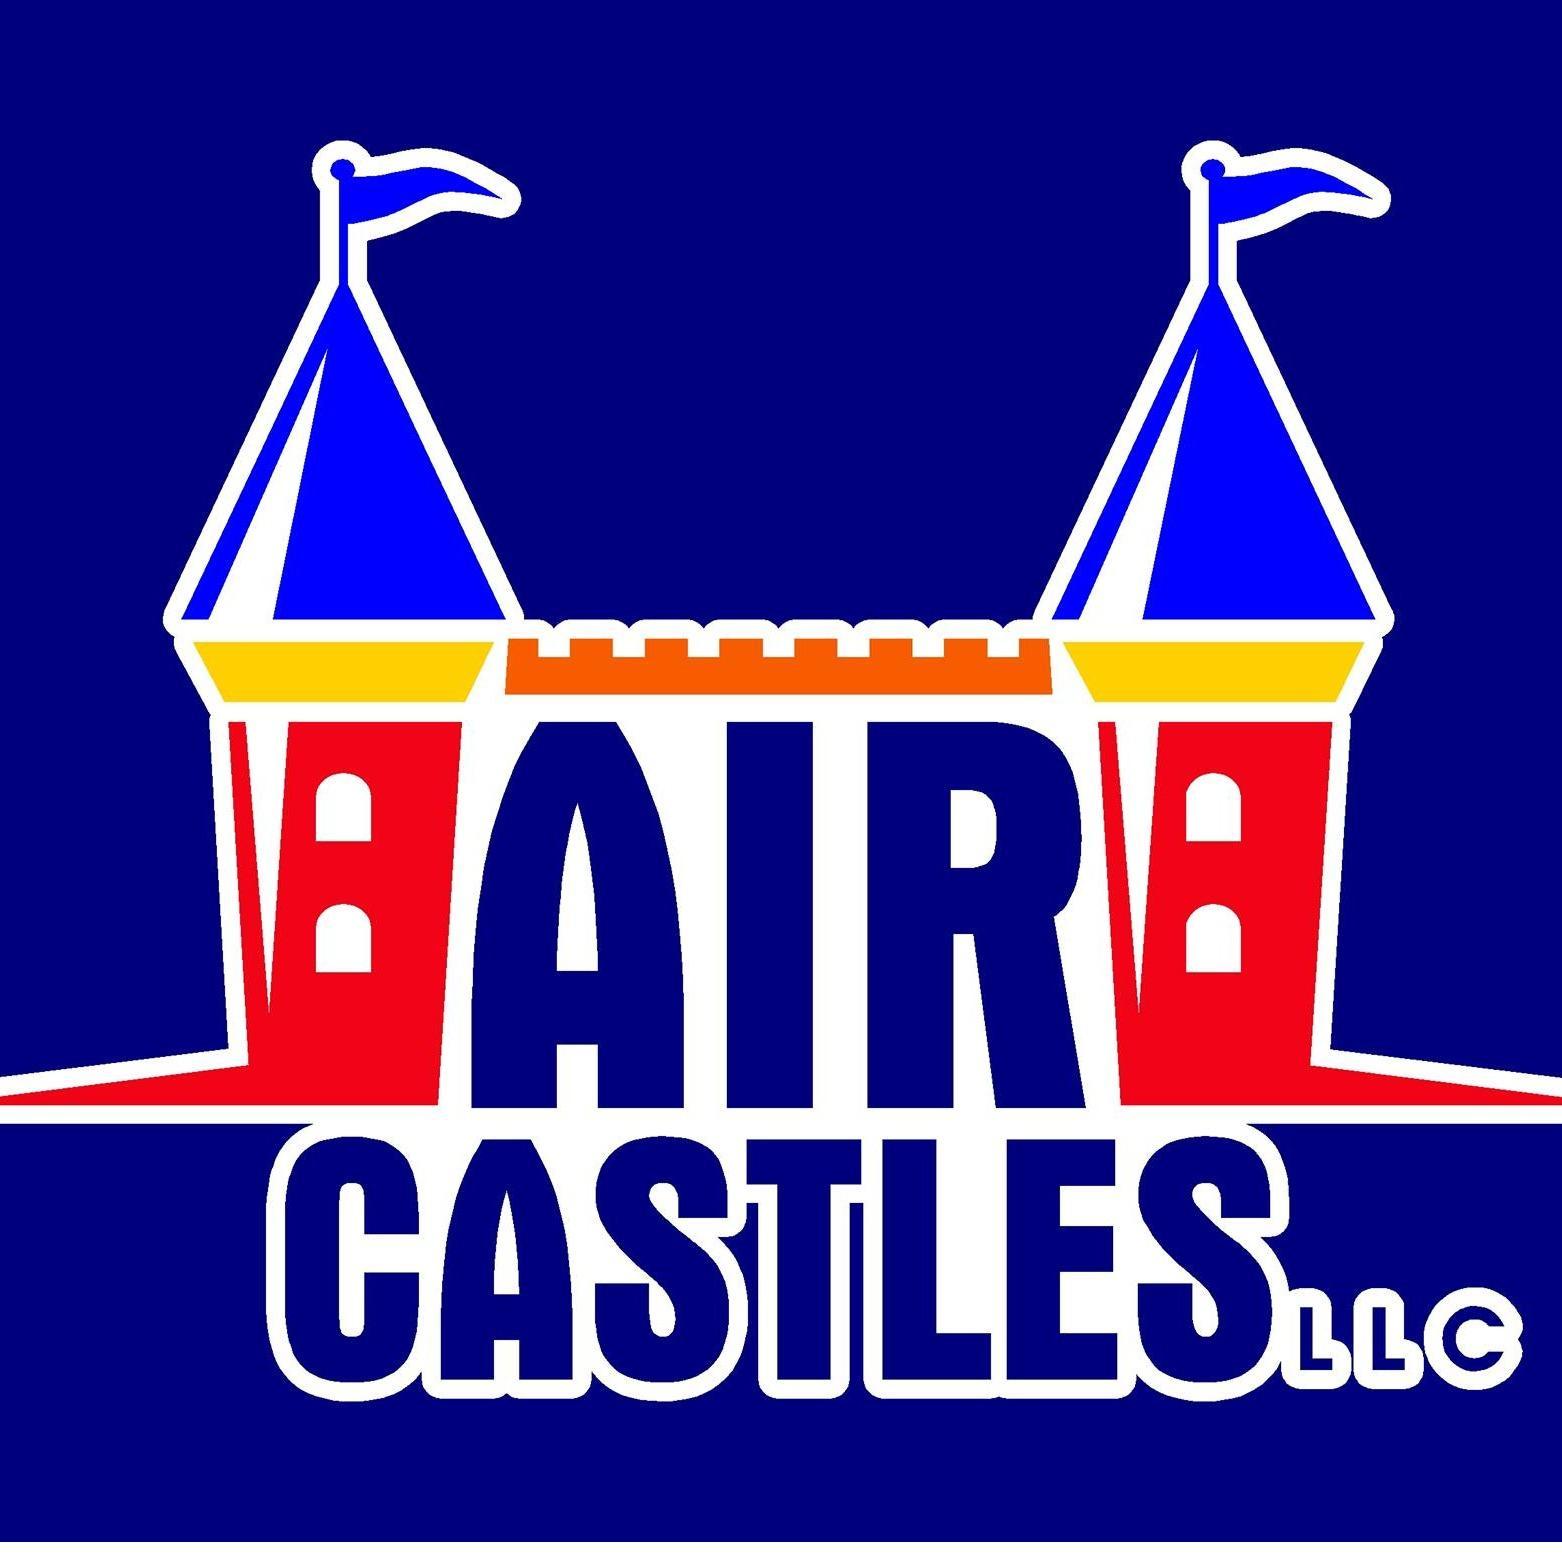 air castles 2018 online shopping for popular & hot air castle inflatables from toys & hobbies, inflatable bouncers, sports & entertainment, playground and more related air castle inflatables like inflatables air dancer, air jumping castle, jumping air castle, used inflatable castle.